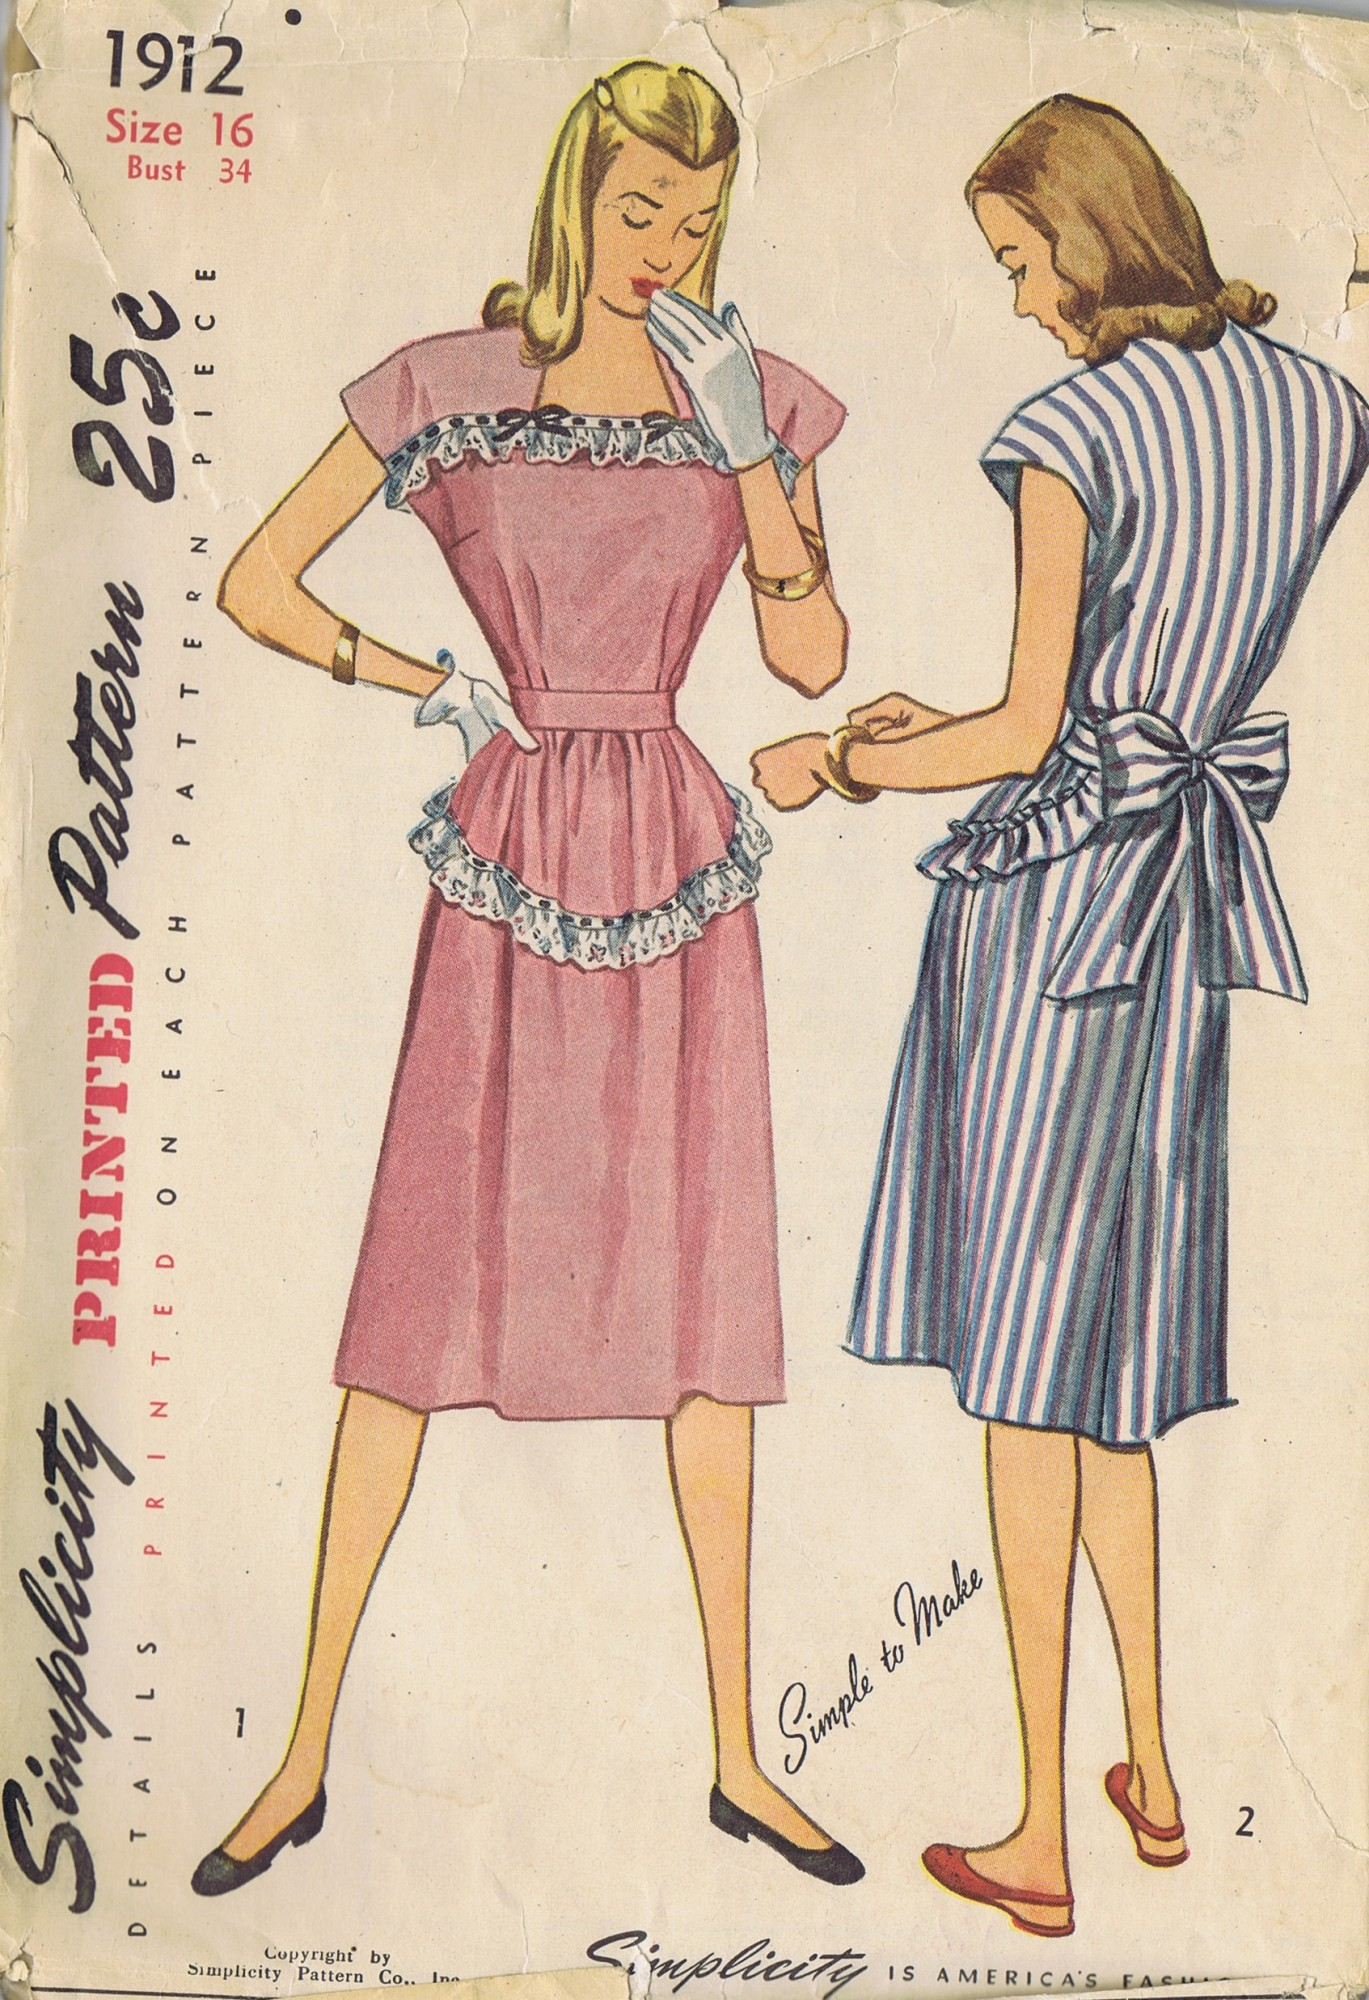 vintage 49s Dress Simplicity Sewing Pattern 1912